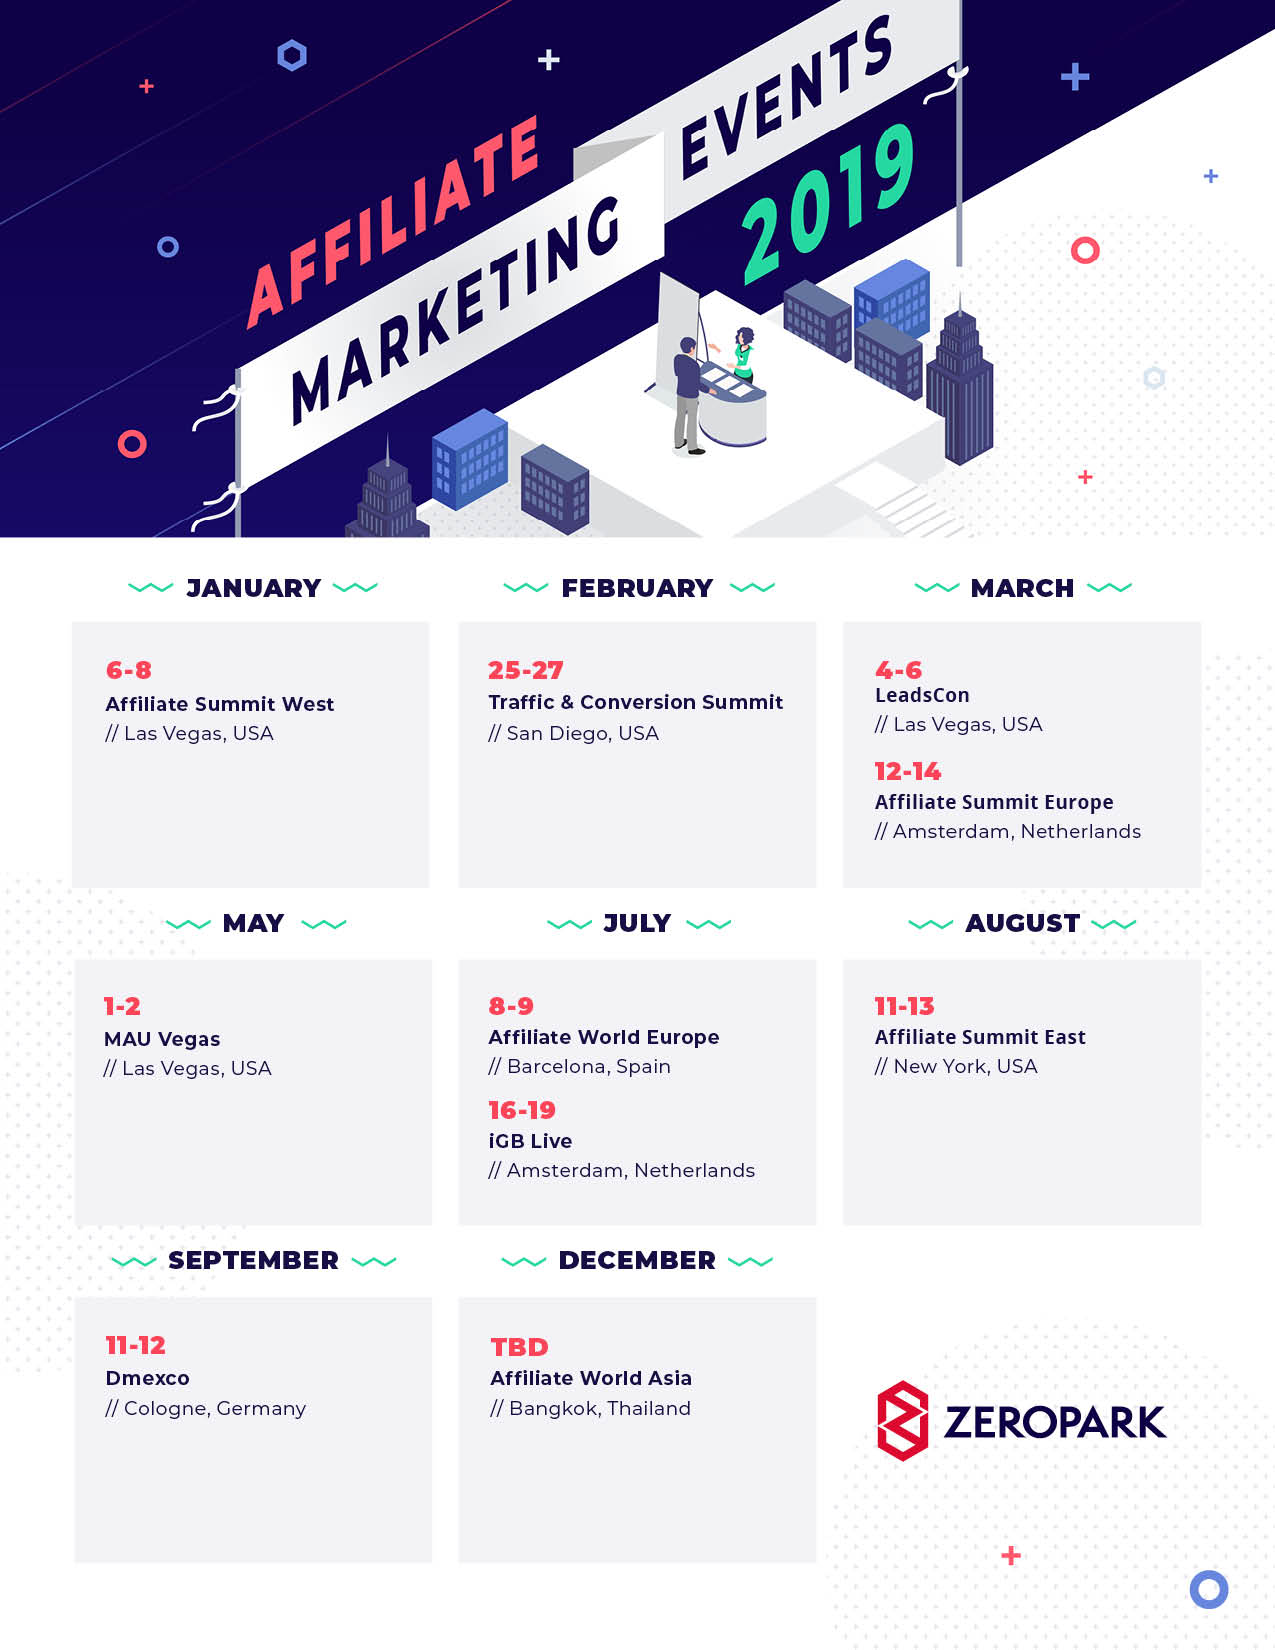 Calendar of Affiliate Marketing Events in 2019